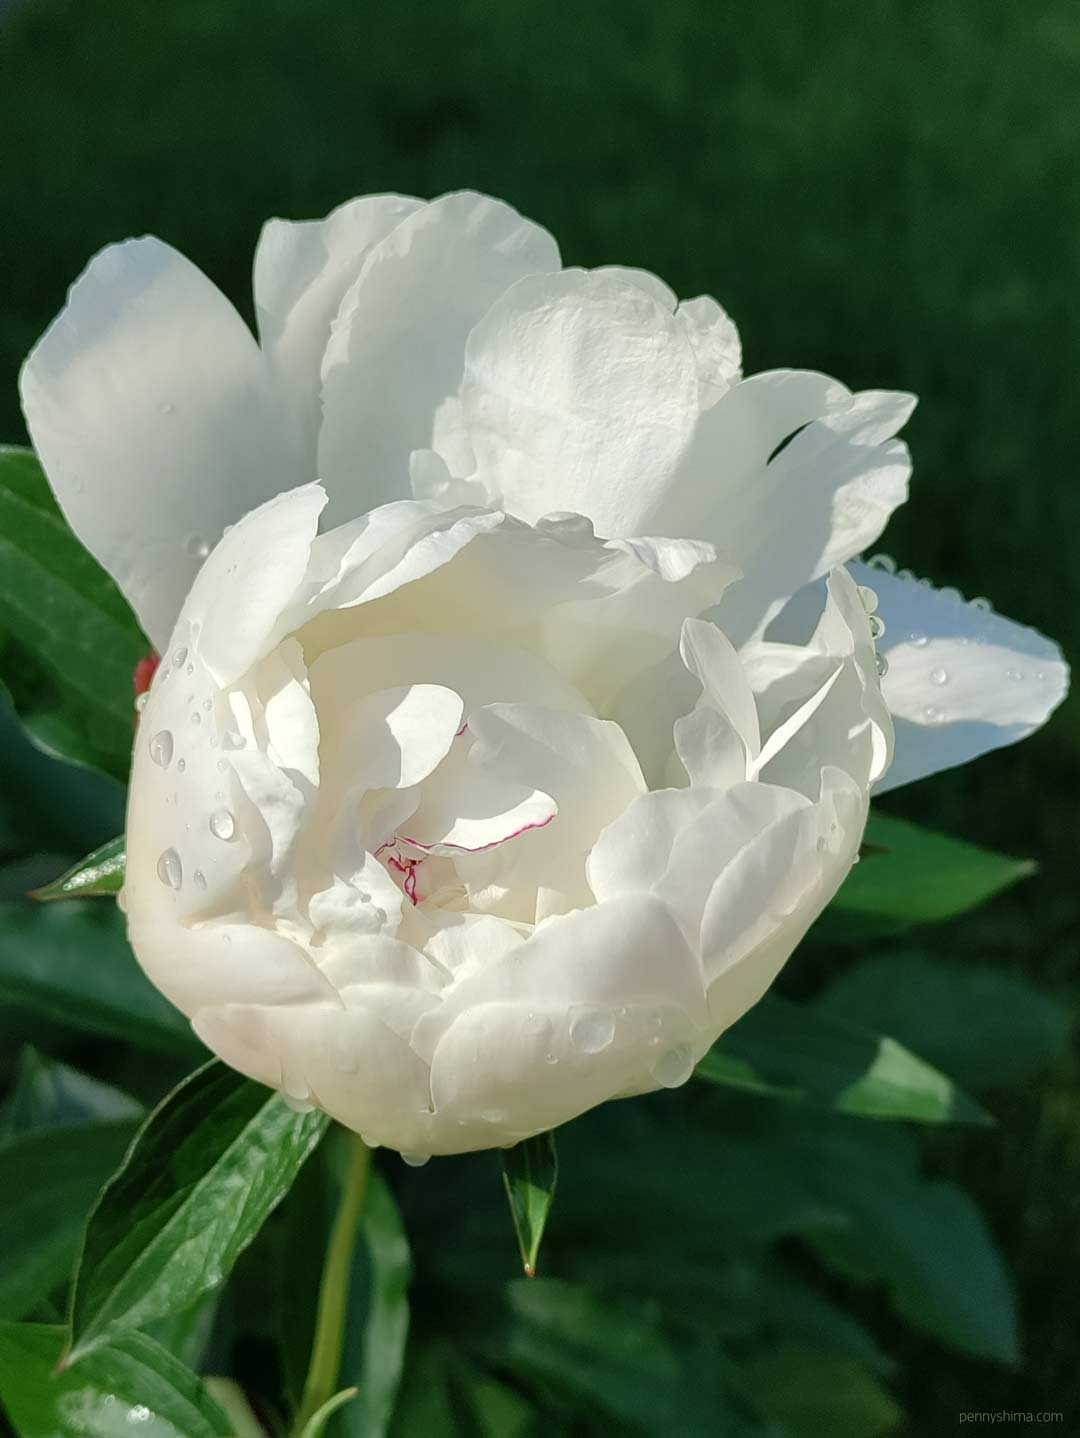 white peony blossom with the center featuring a thin line of magenta. there a dew drops on some of the petals.